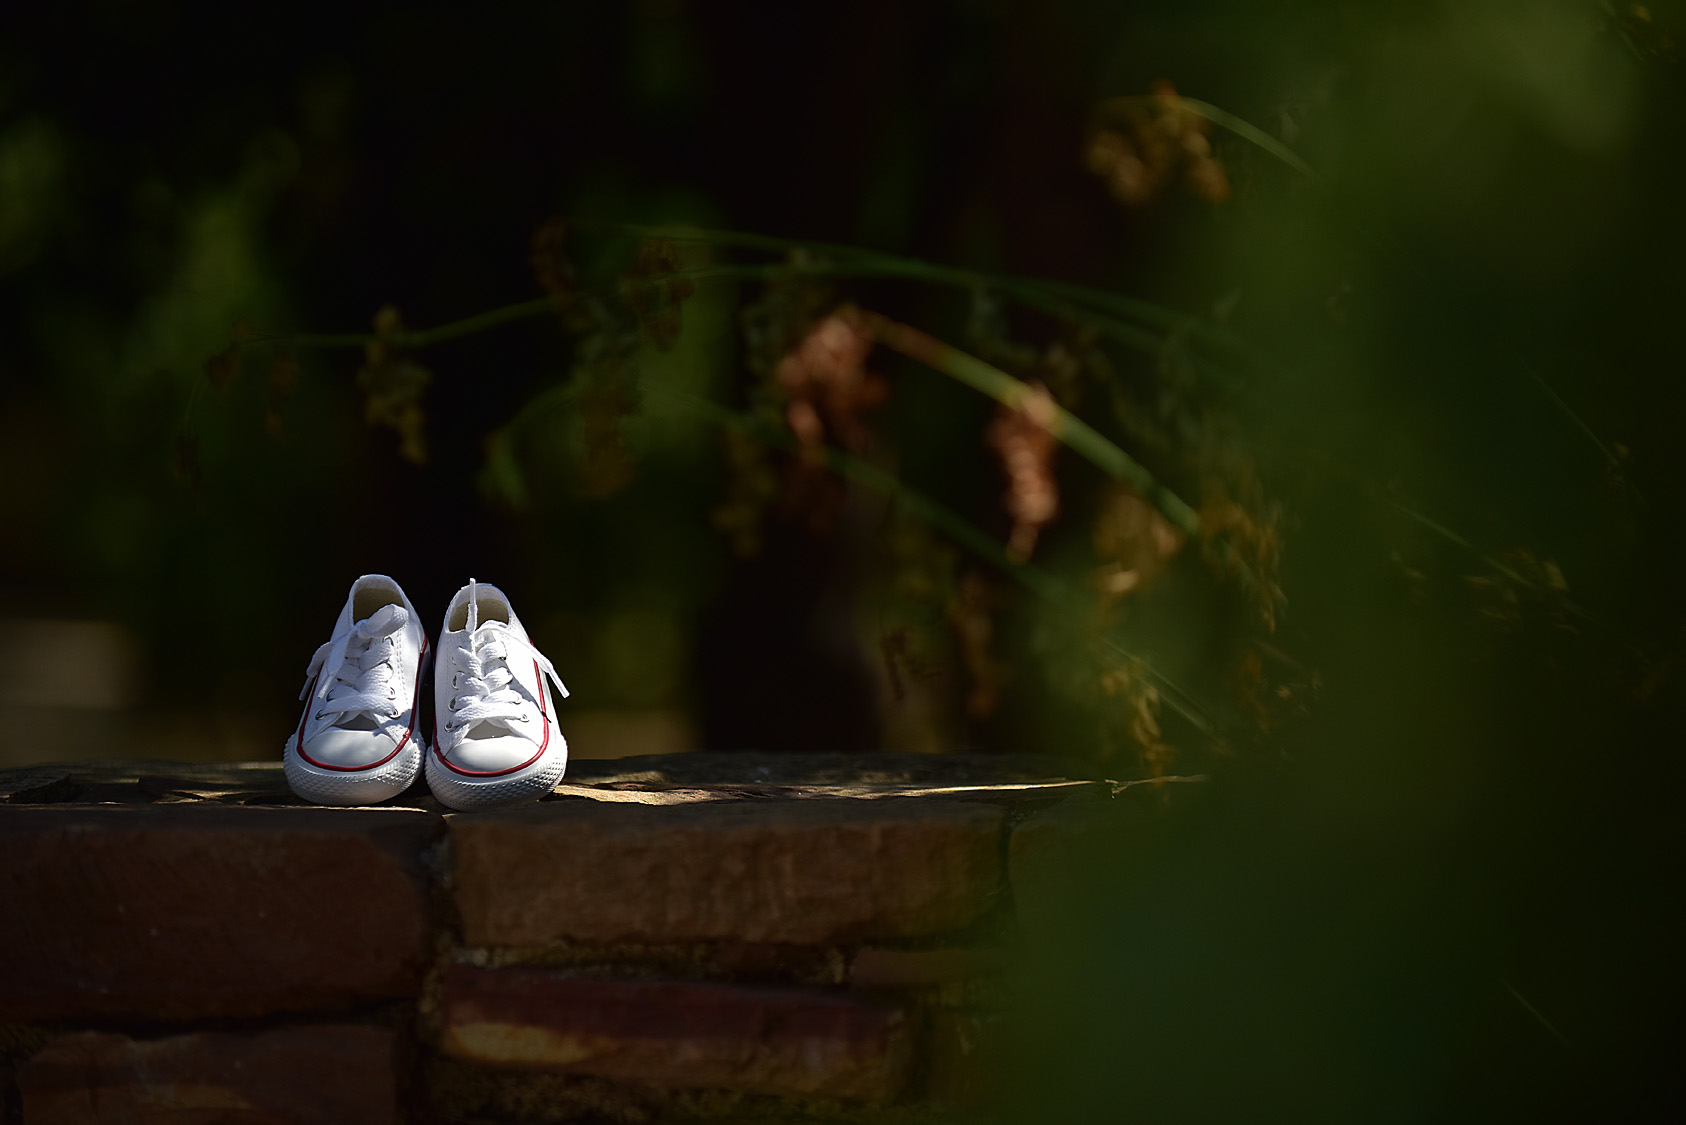 Baptism-shoes-chios-island-from-newyork-kambos-christening-00